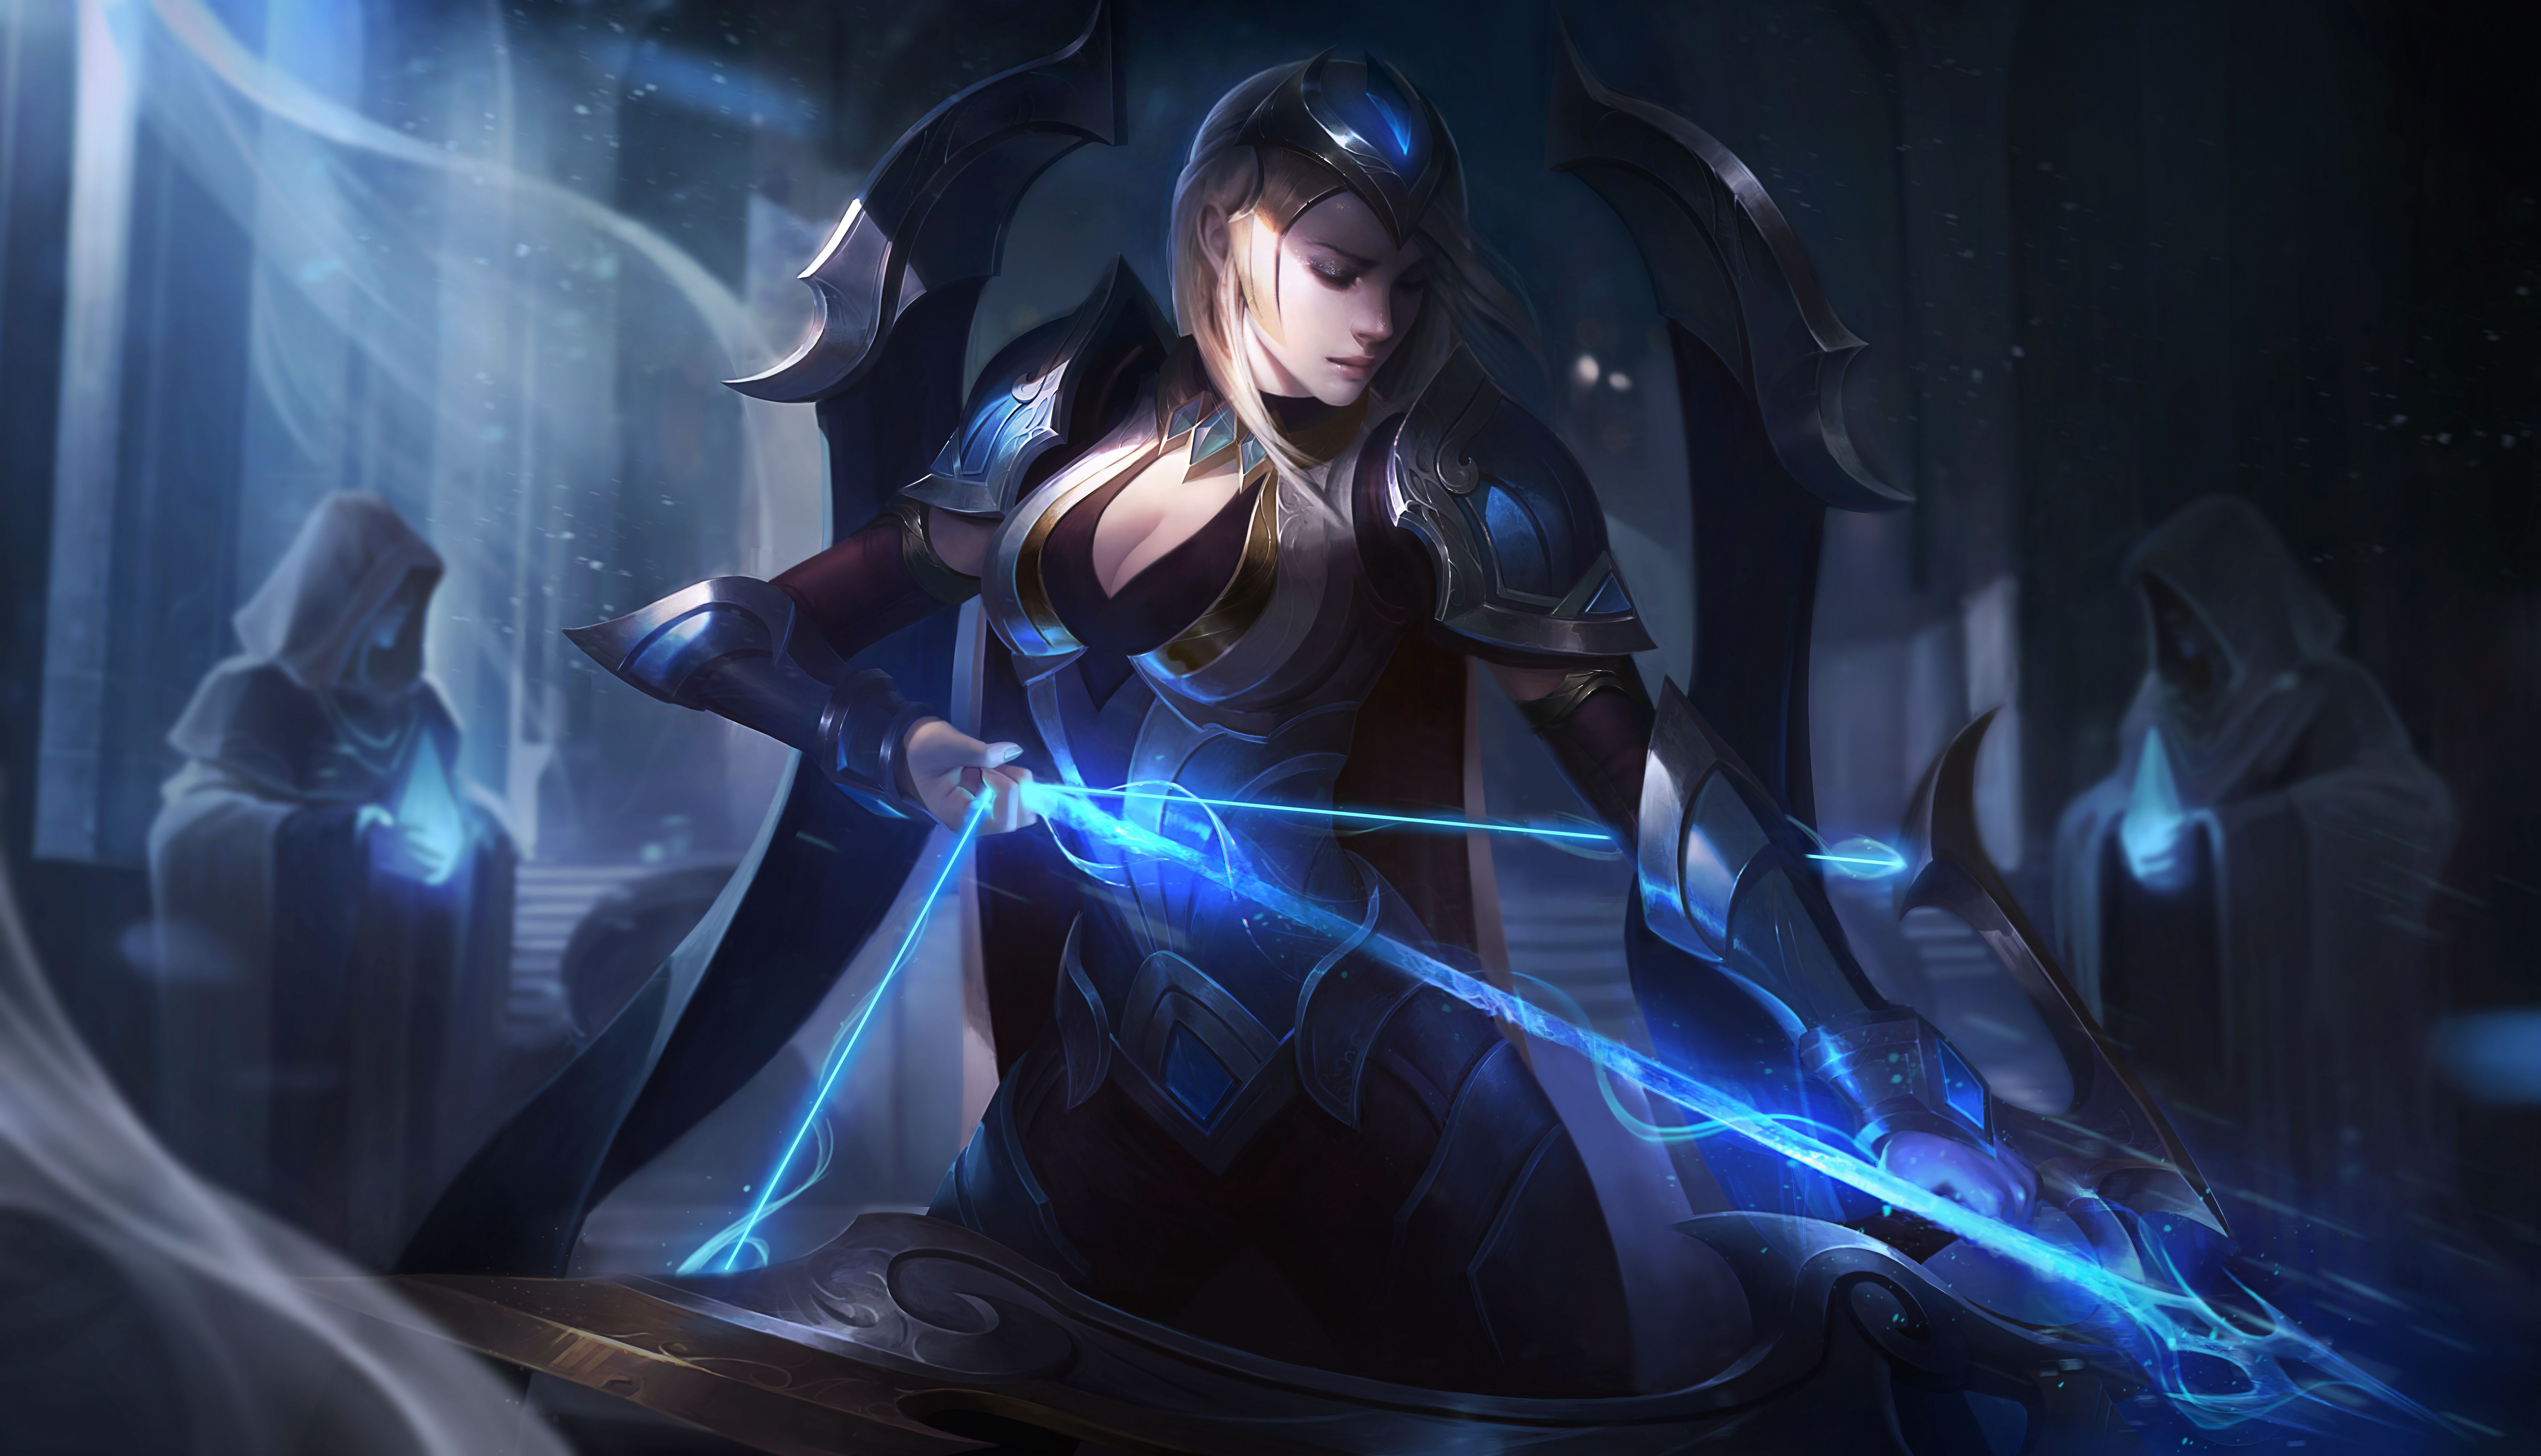 Championship Ashe Lol Wallpapers In 2019 League Of